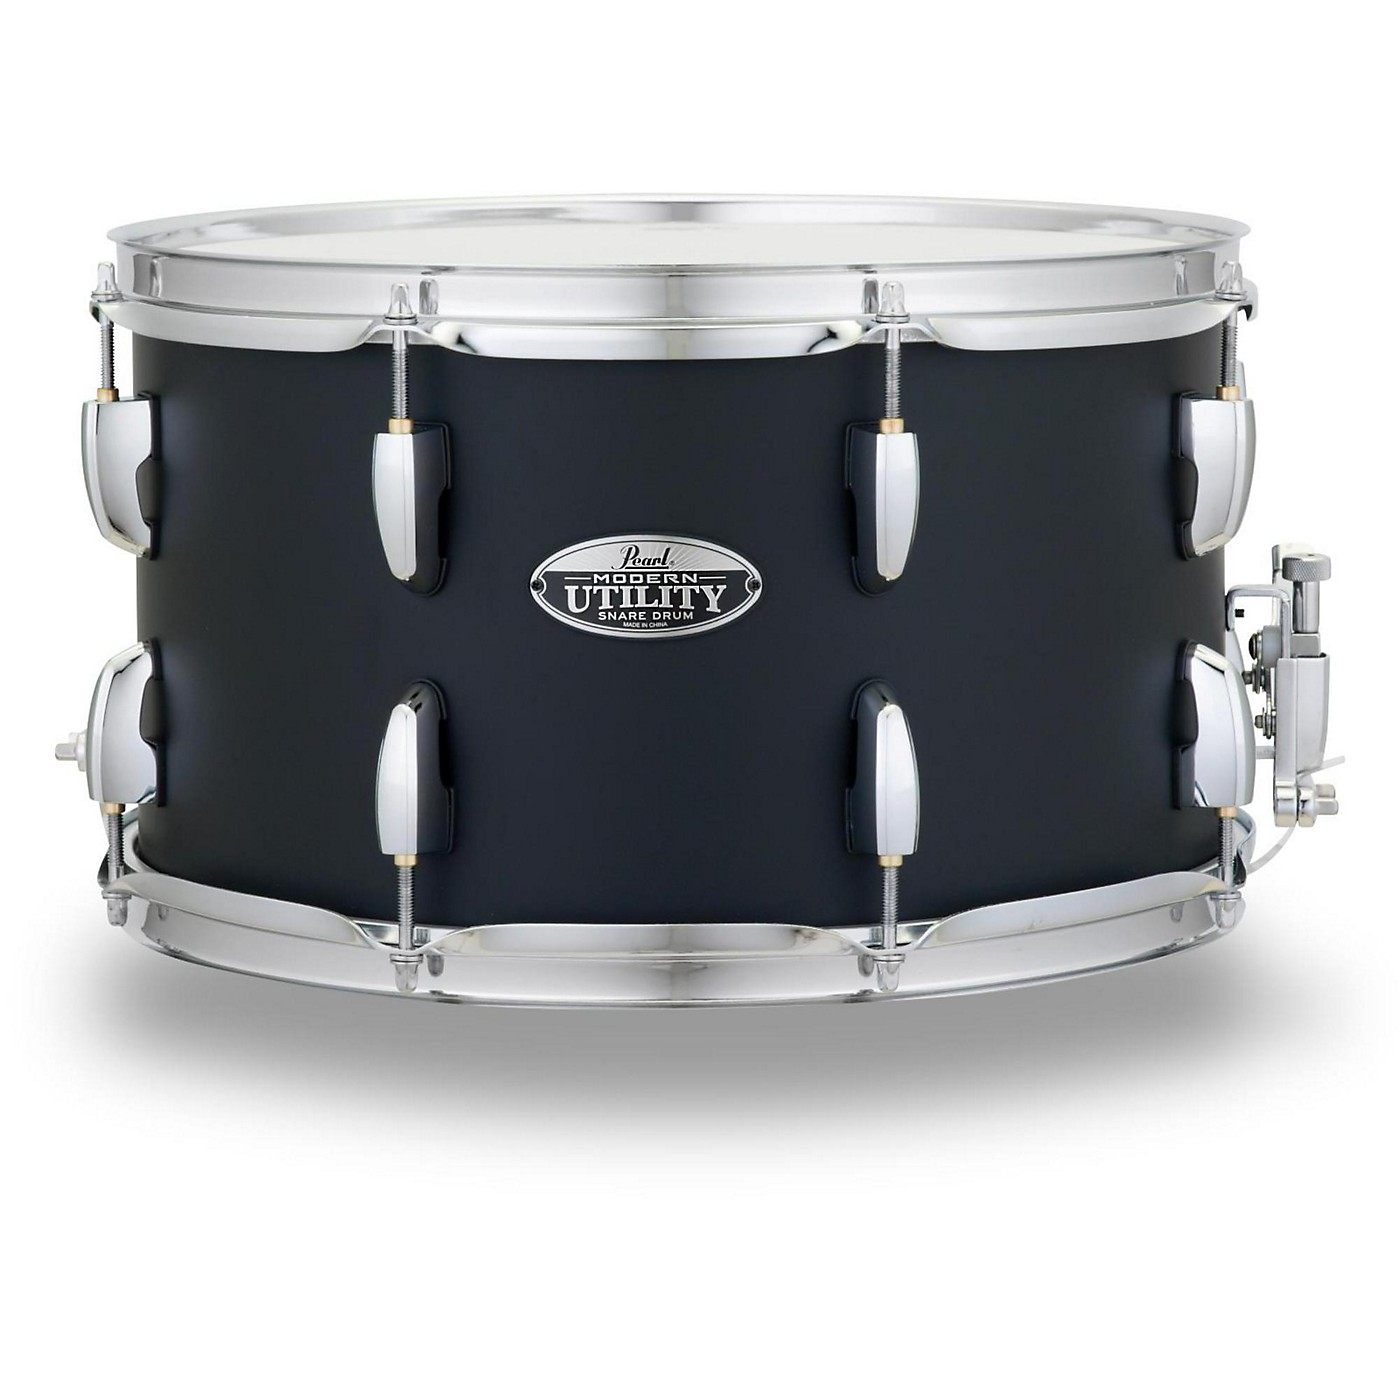 Pearl Modern Utility Maple Snare Drum thumbnail